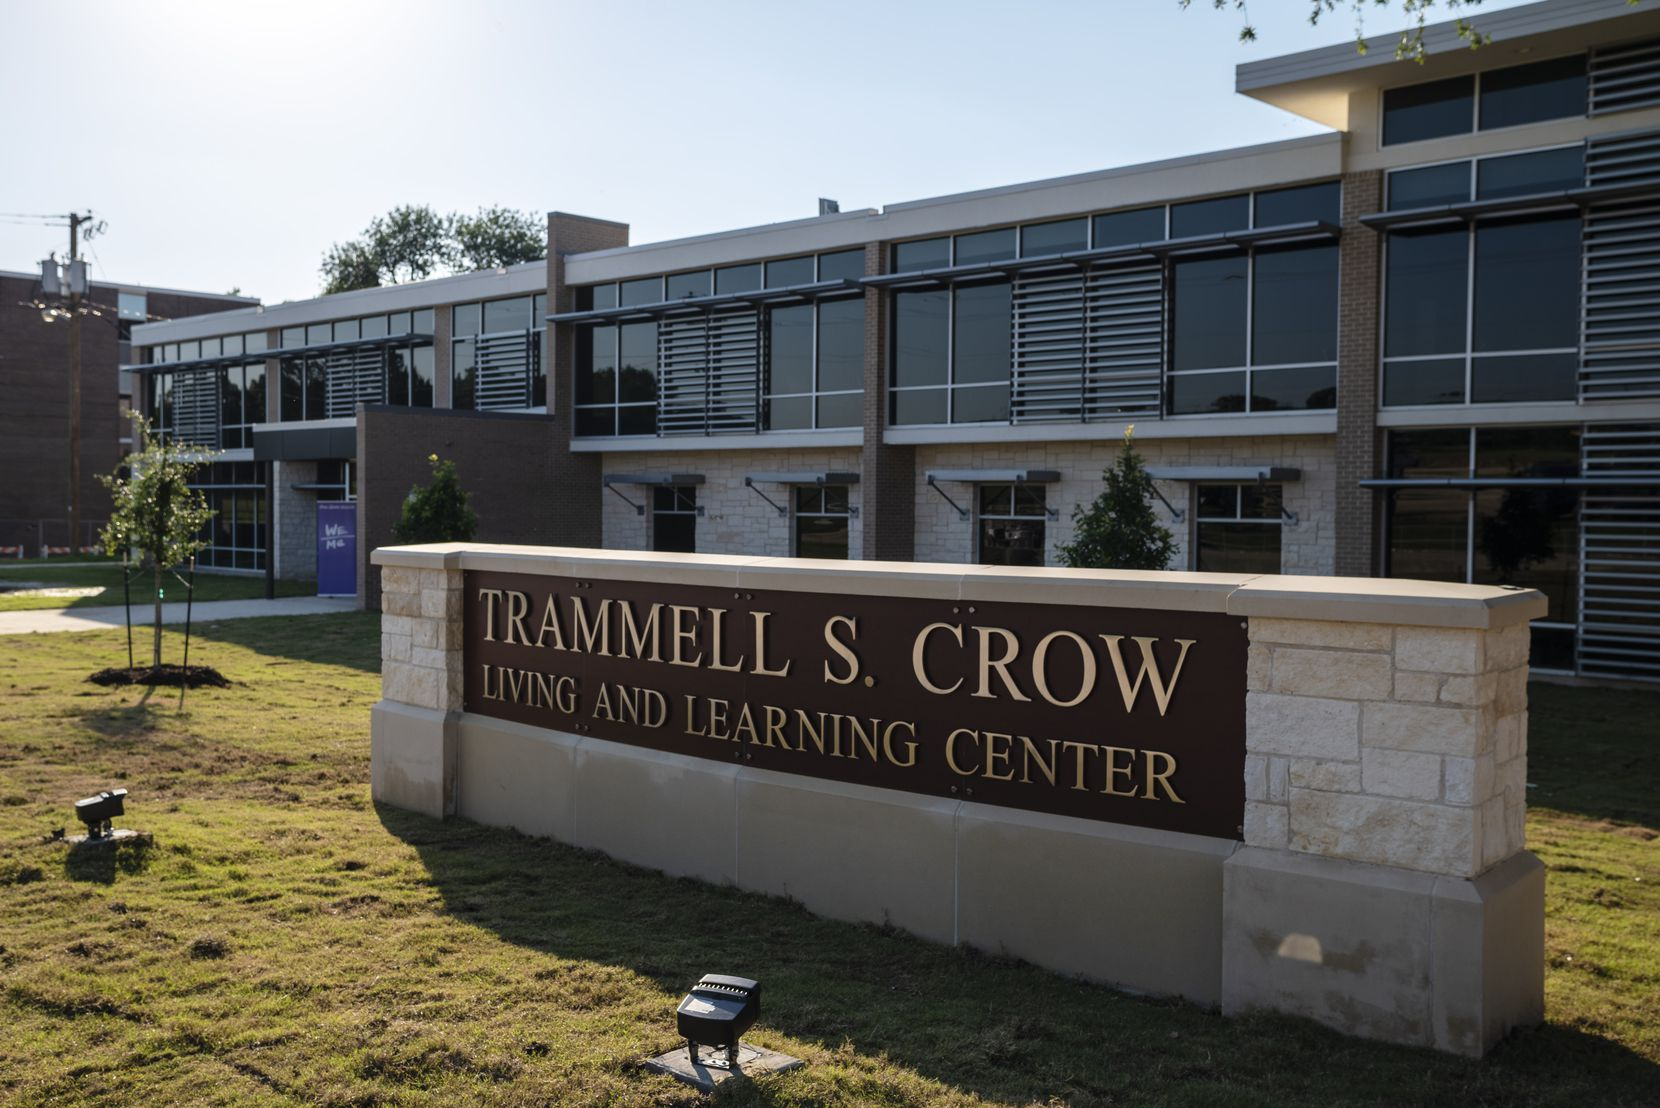 The new Trammell S. Crow Living and Learning Center on the campus of Paul Quinn College is shown during a reopening event on June 15, 2021, in Dallas. The event showcased guided tours of the new buildings on campus, vendor booths, a COVID-19 vaccine clinic and live music by the Dallas Symphony Orchestra.